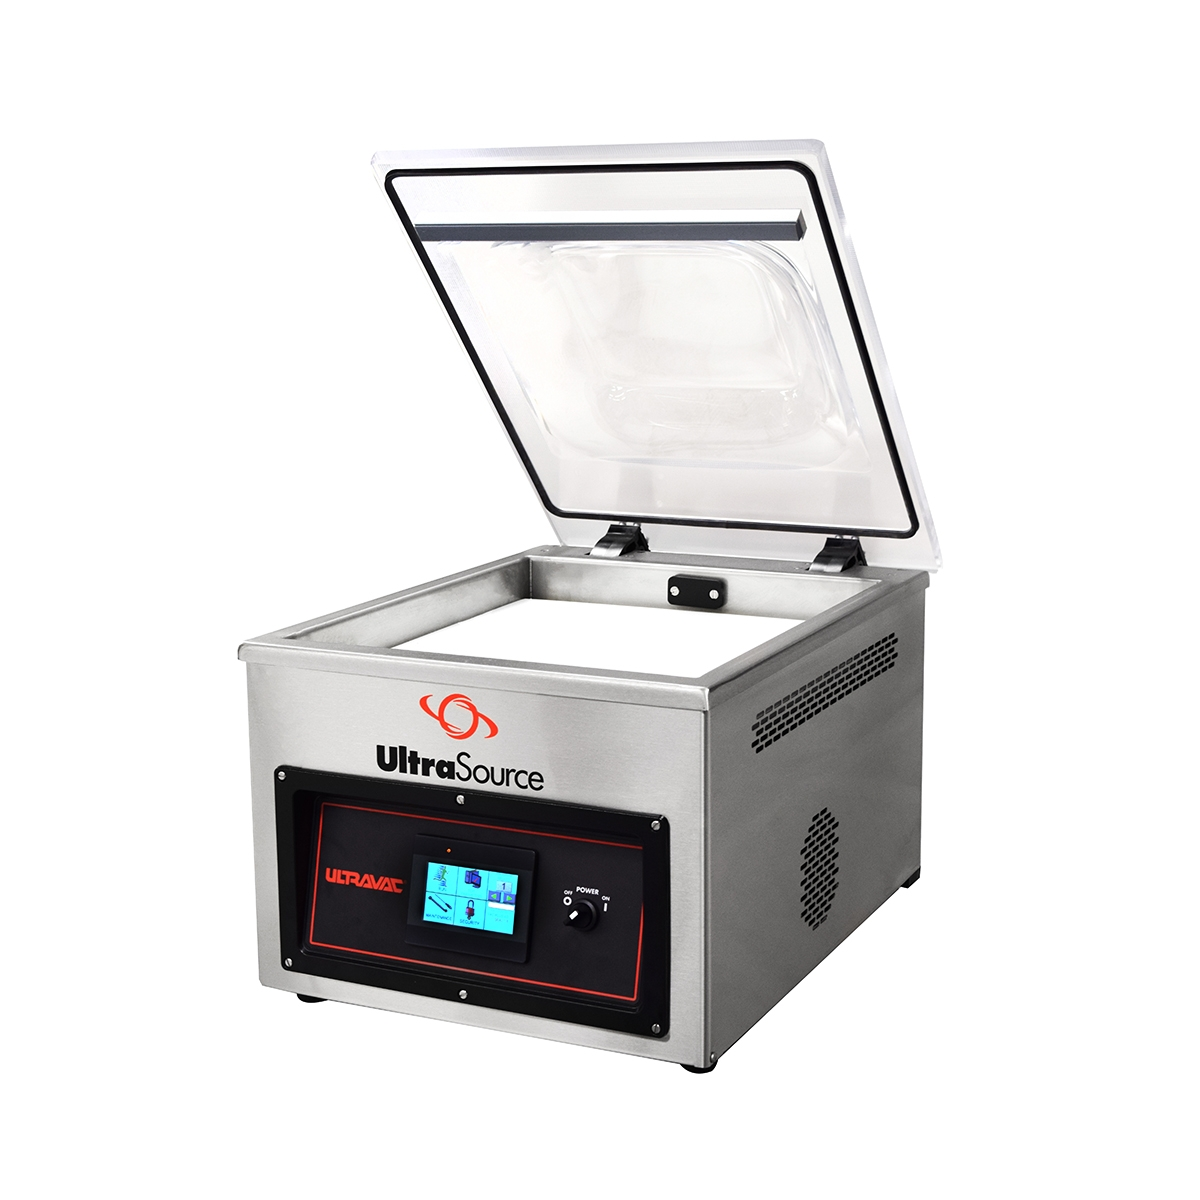 Ultravac 250 Chamber Vacuum Sealer with Optional Touchscreen